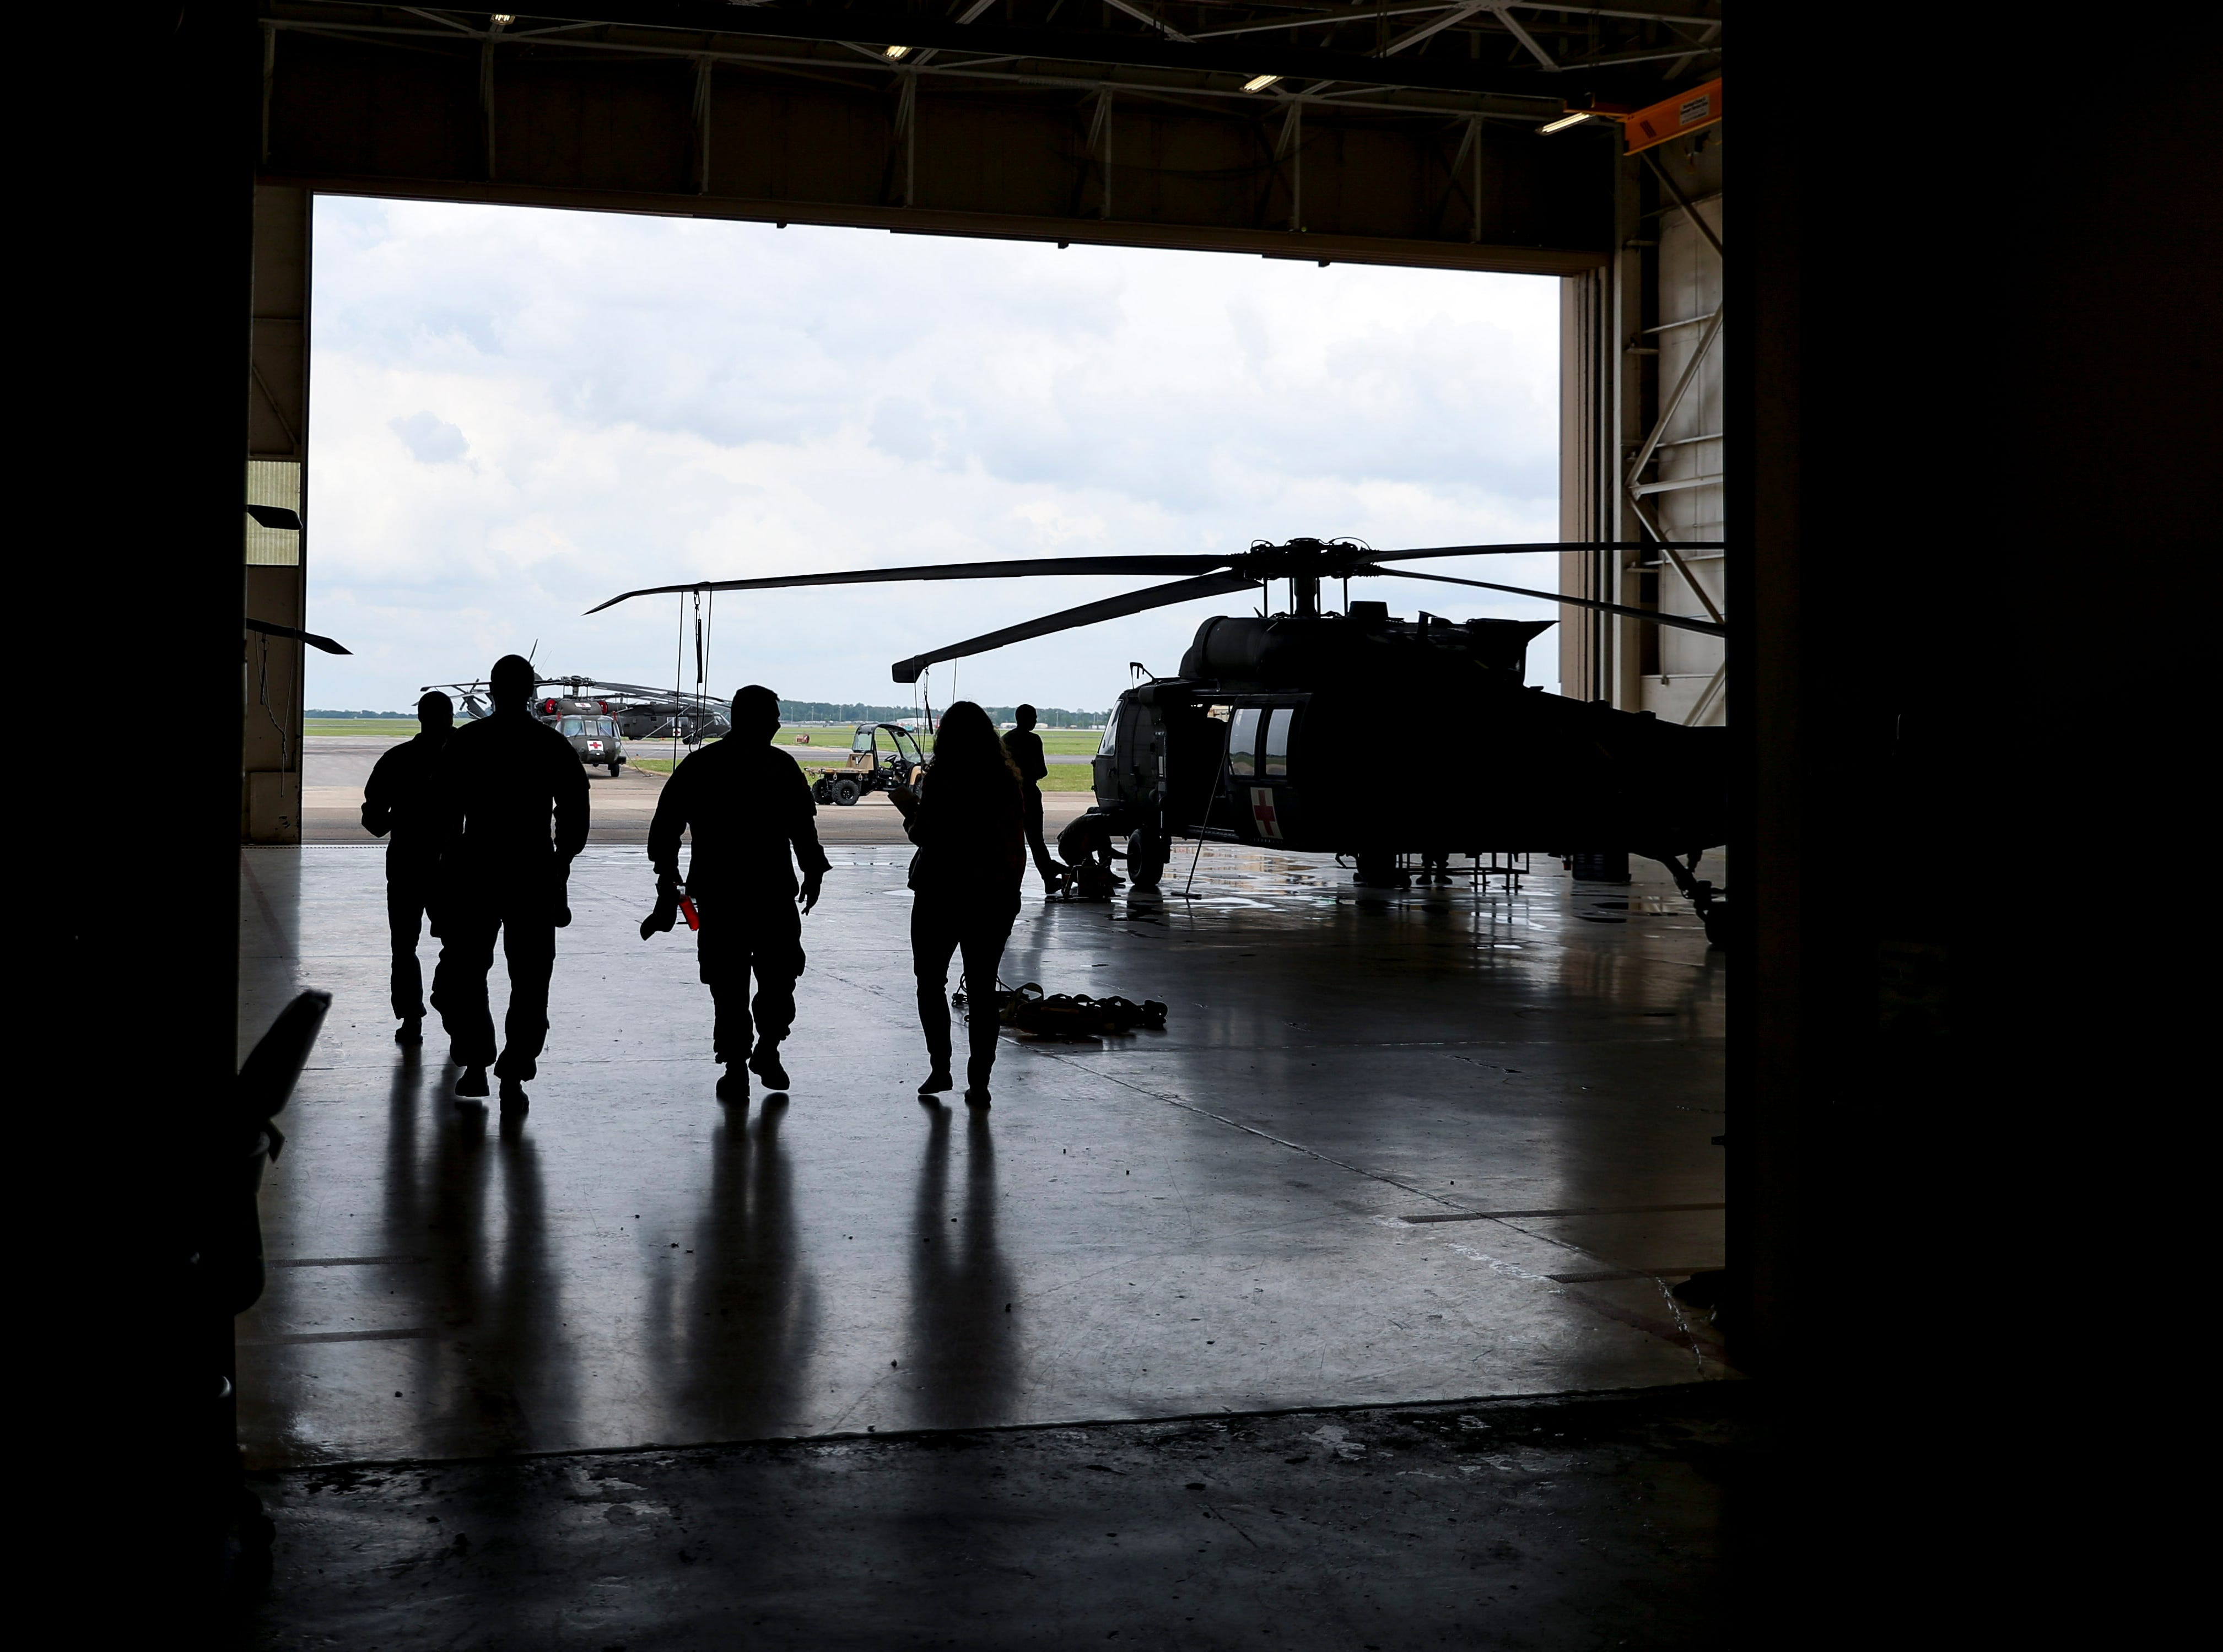 Soldiers walk towards the doors of Hangar 3 at Campbell Army Airfield in Fort Campbell, KY., on Wednesday, May 1, 2019.